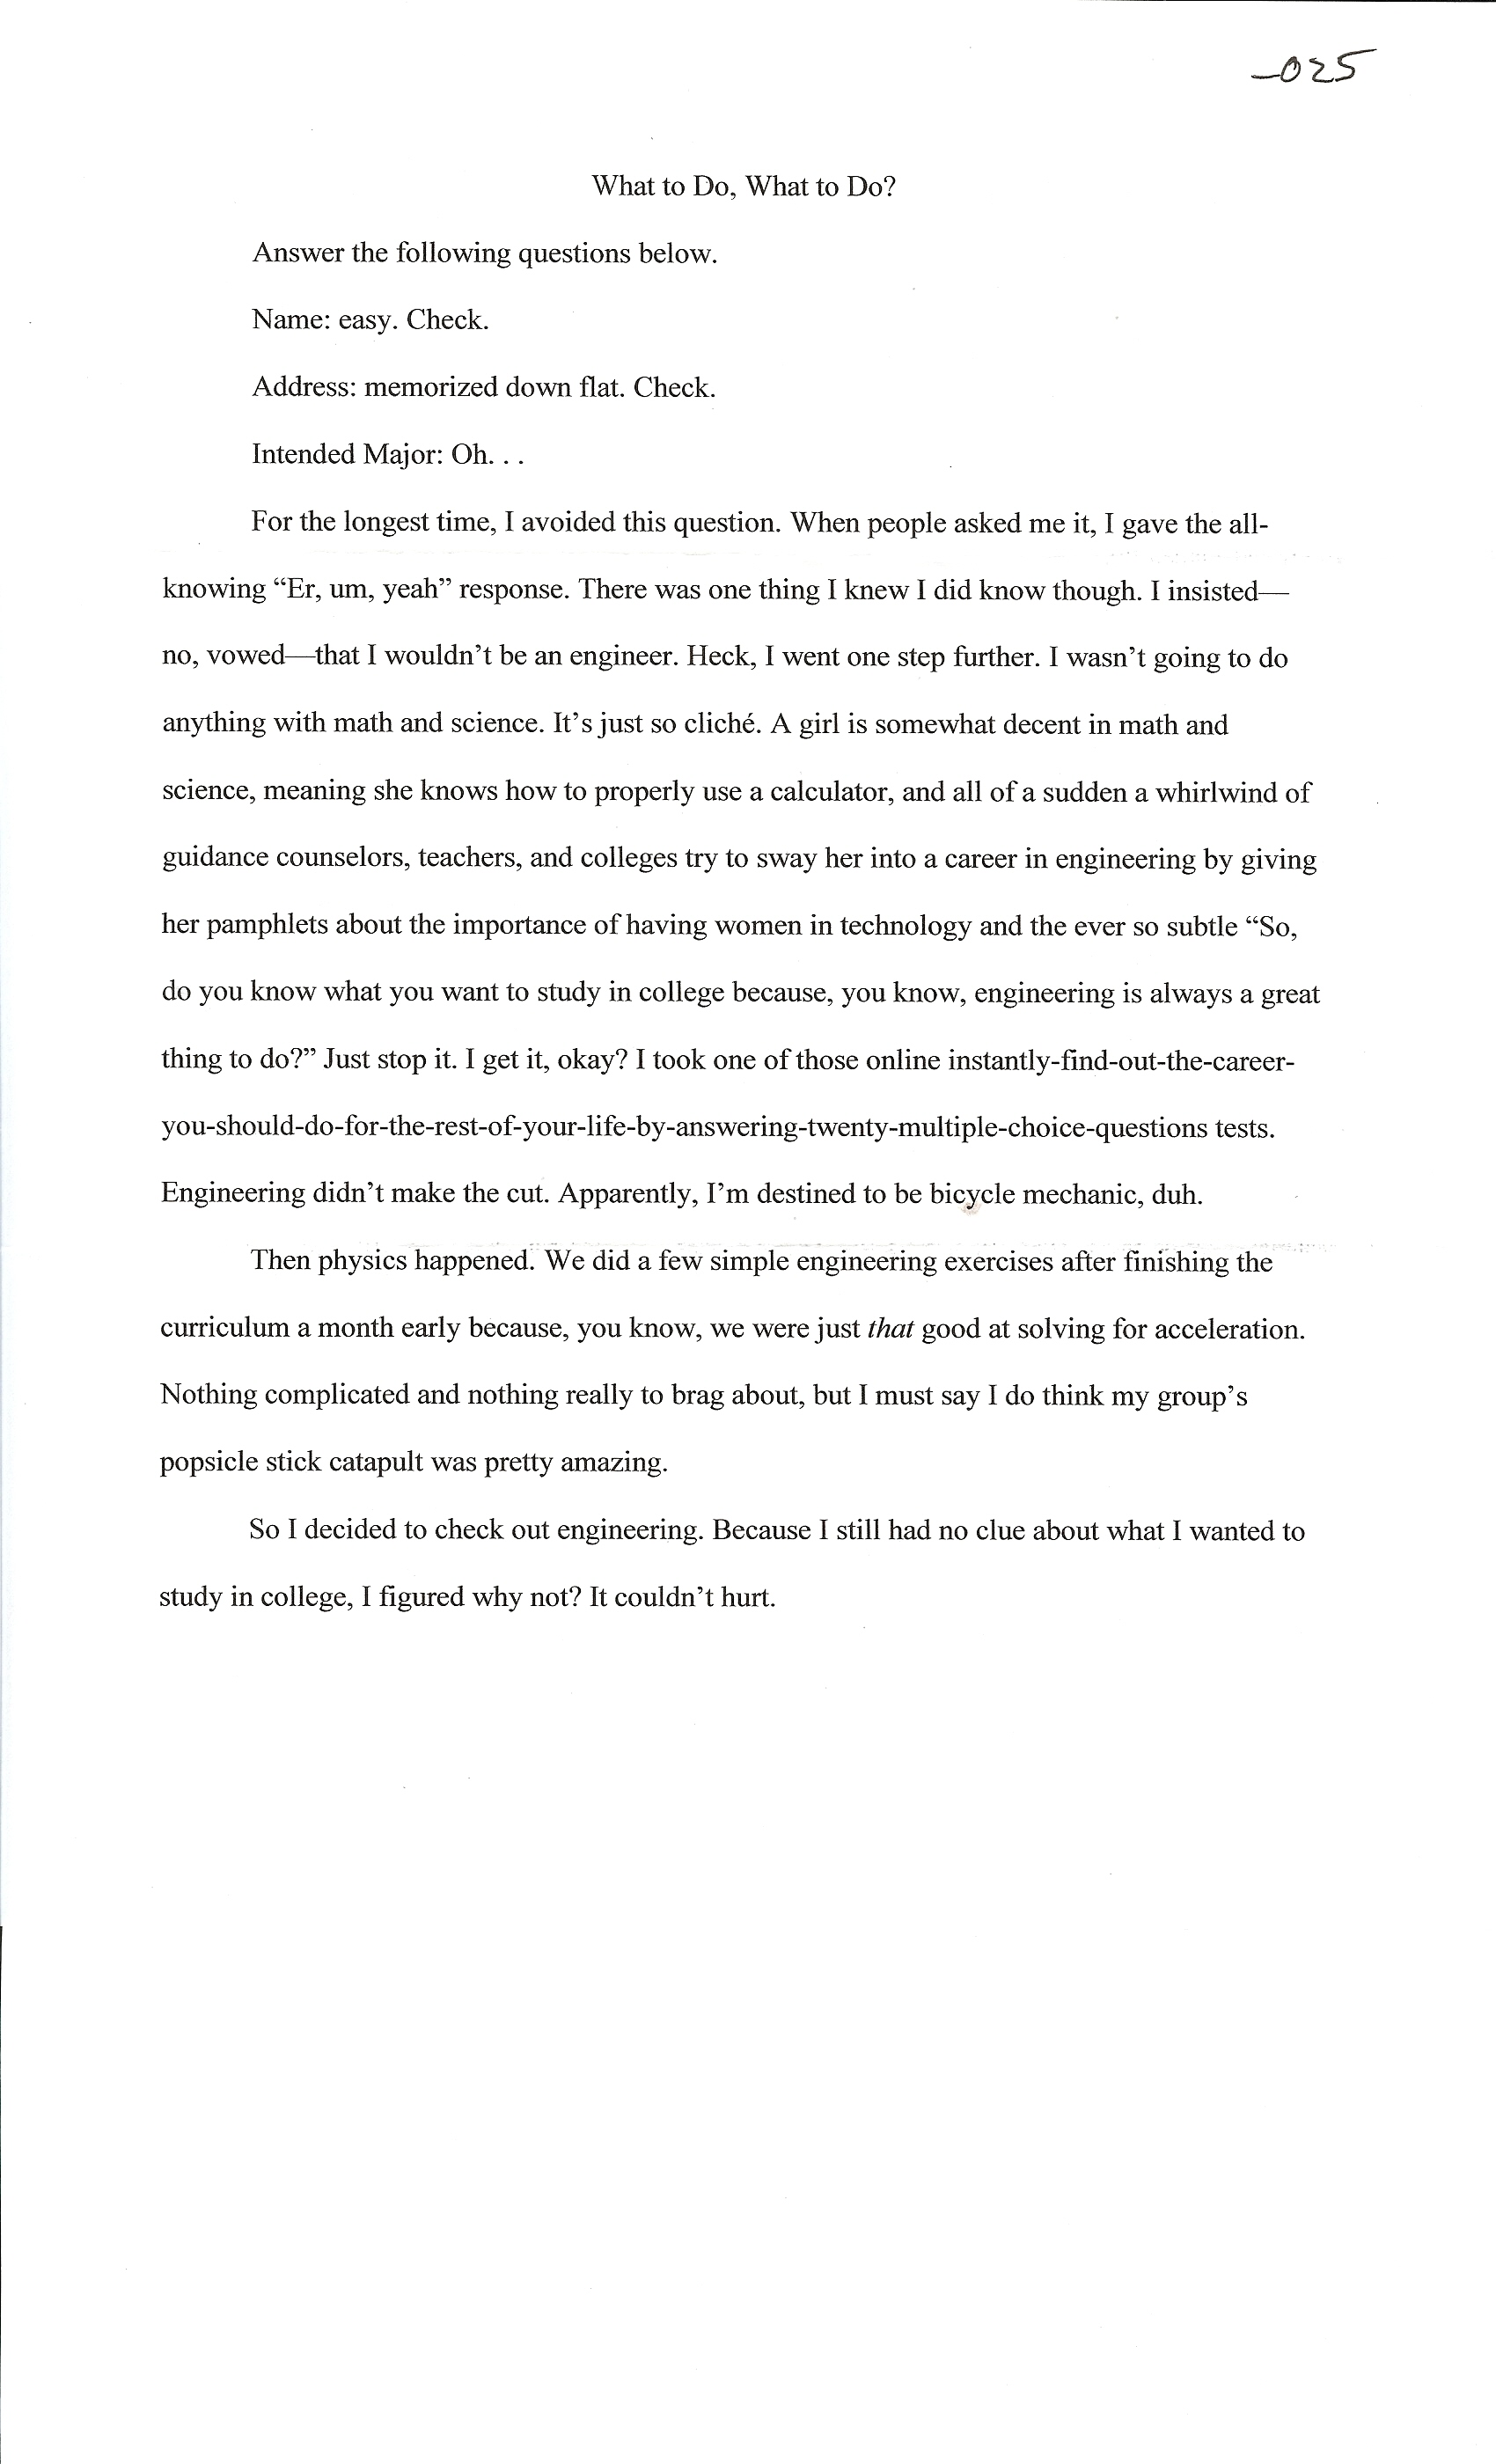 020 Scholarship Essay Titles Contest Writing Personal Caitlin Teague College Contests Student For High School Students Astounding 2019 Middle Full